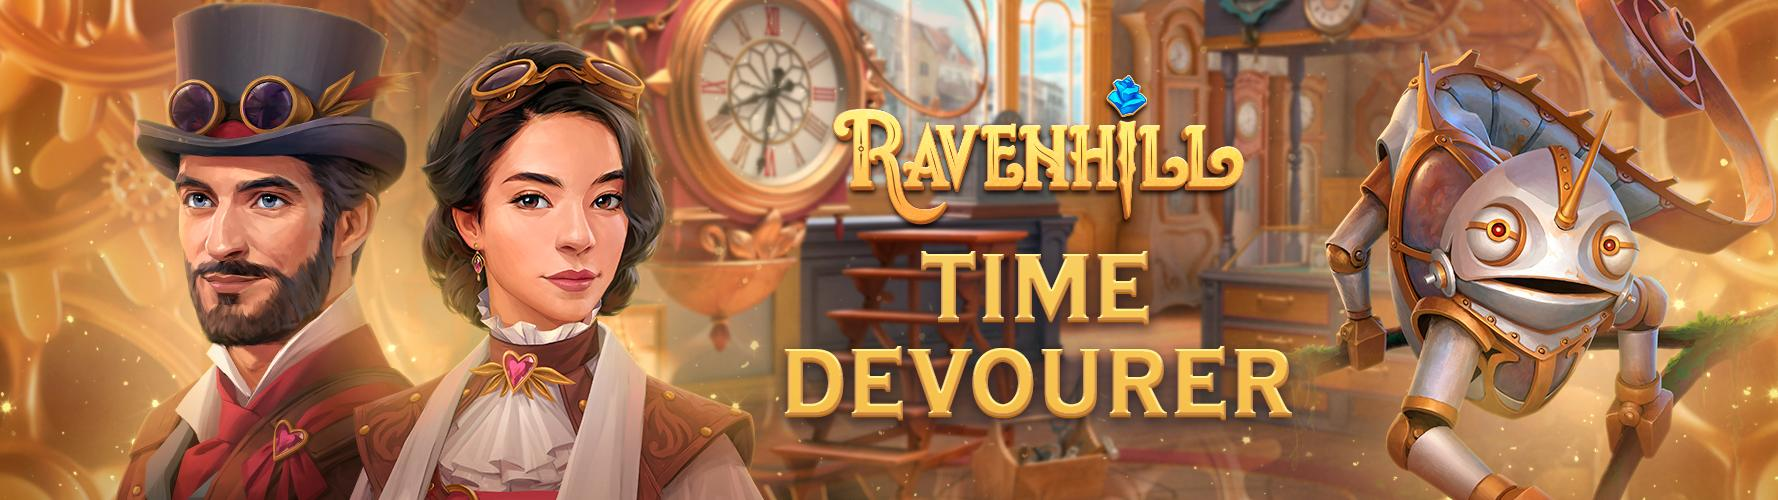 Ravenhill: Hidden Mystery. Update 2.23.0: Time Devourer